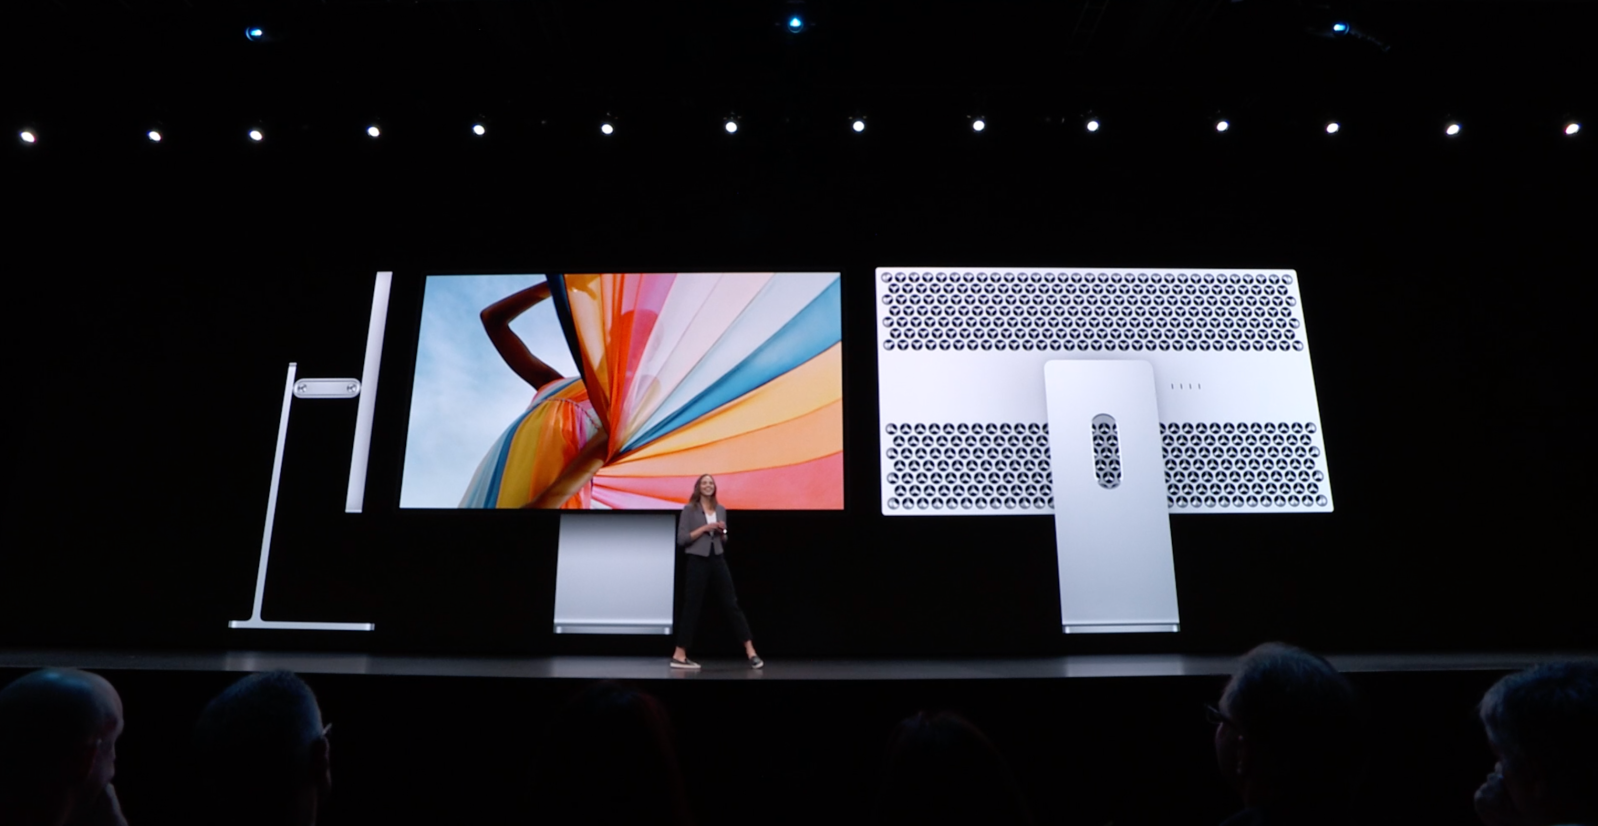 Apple unveils new $4999 32-inch 6K LCD reference-grade Pro Display XDR at WWDC 2019